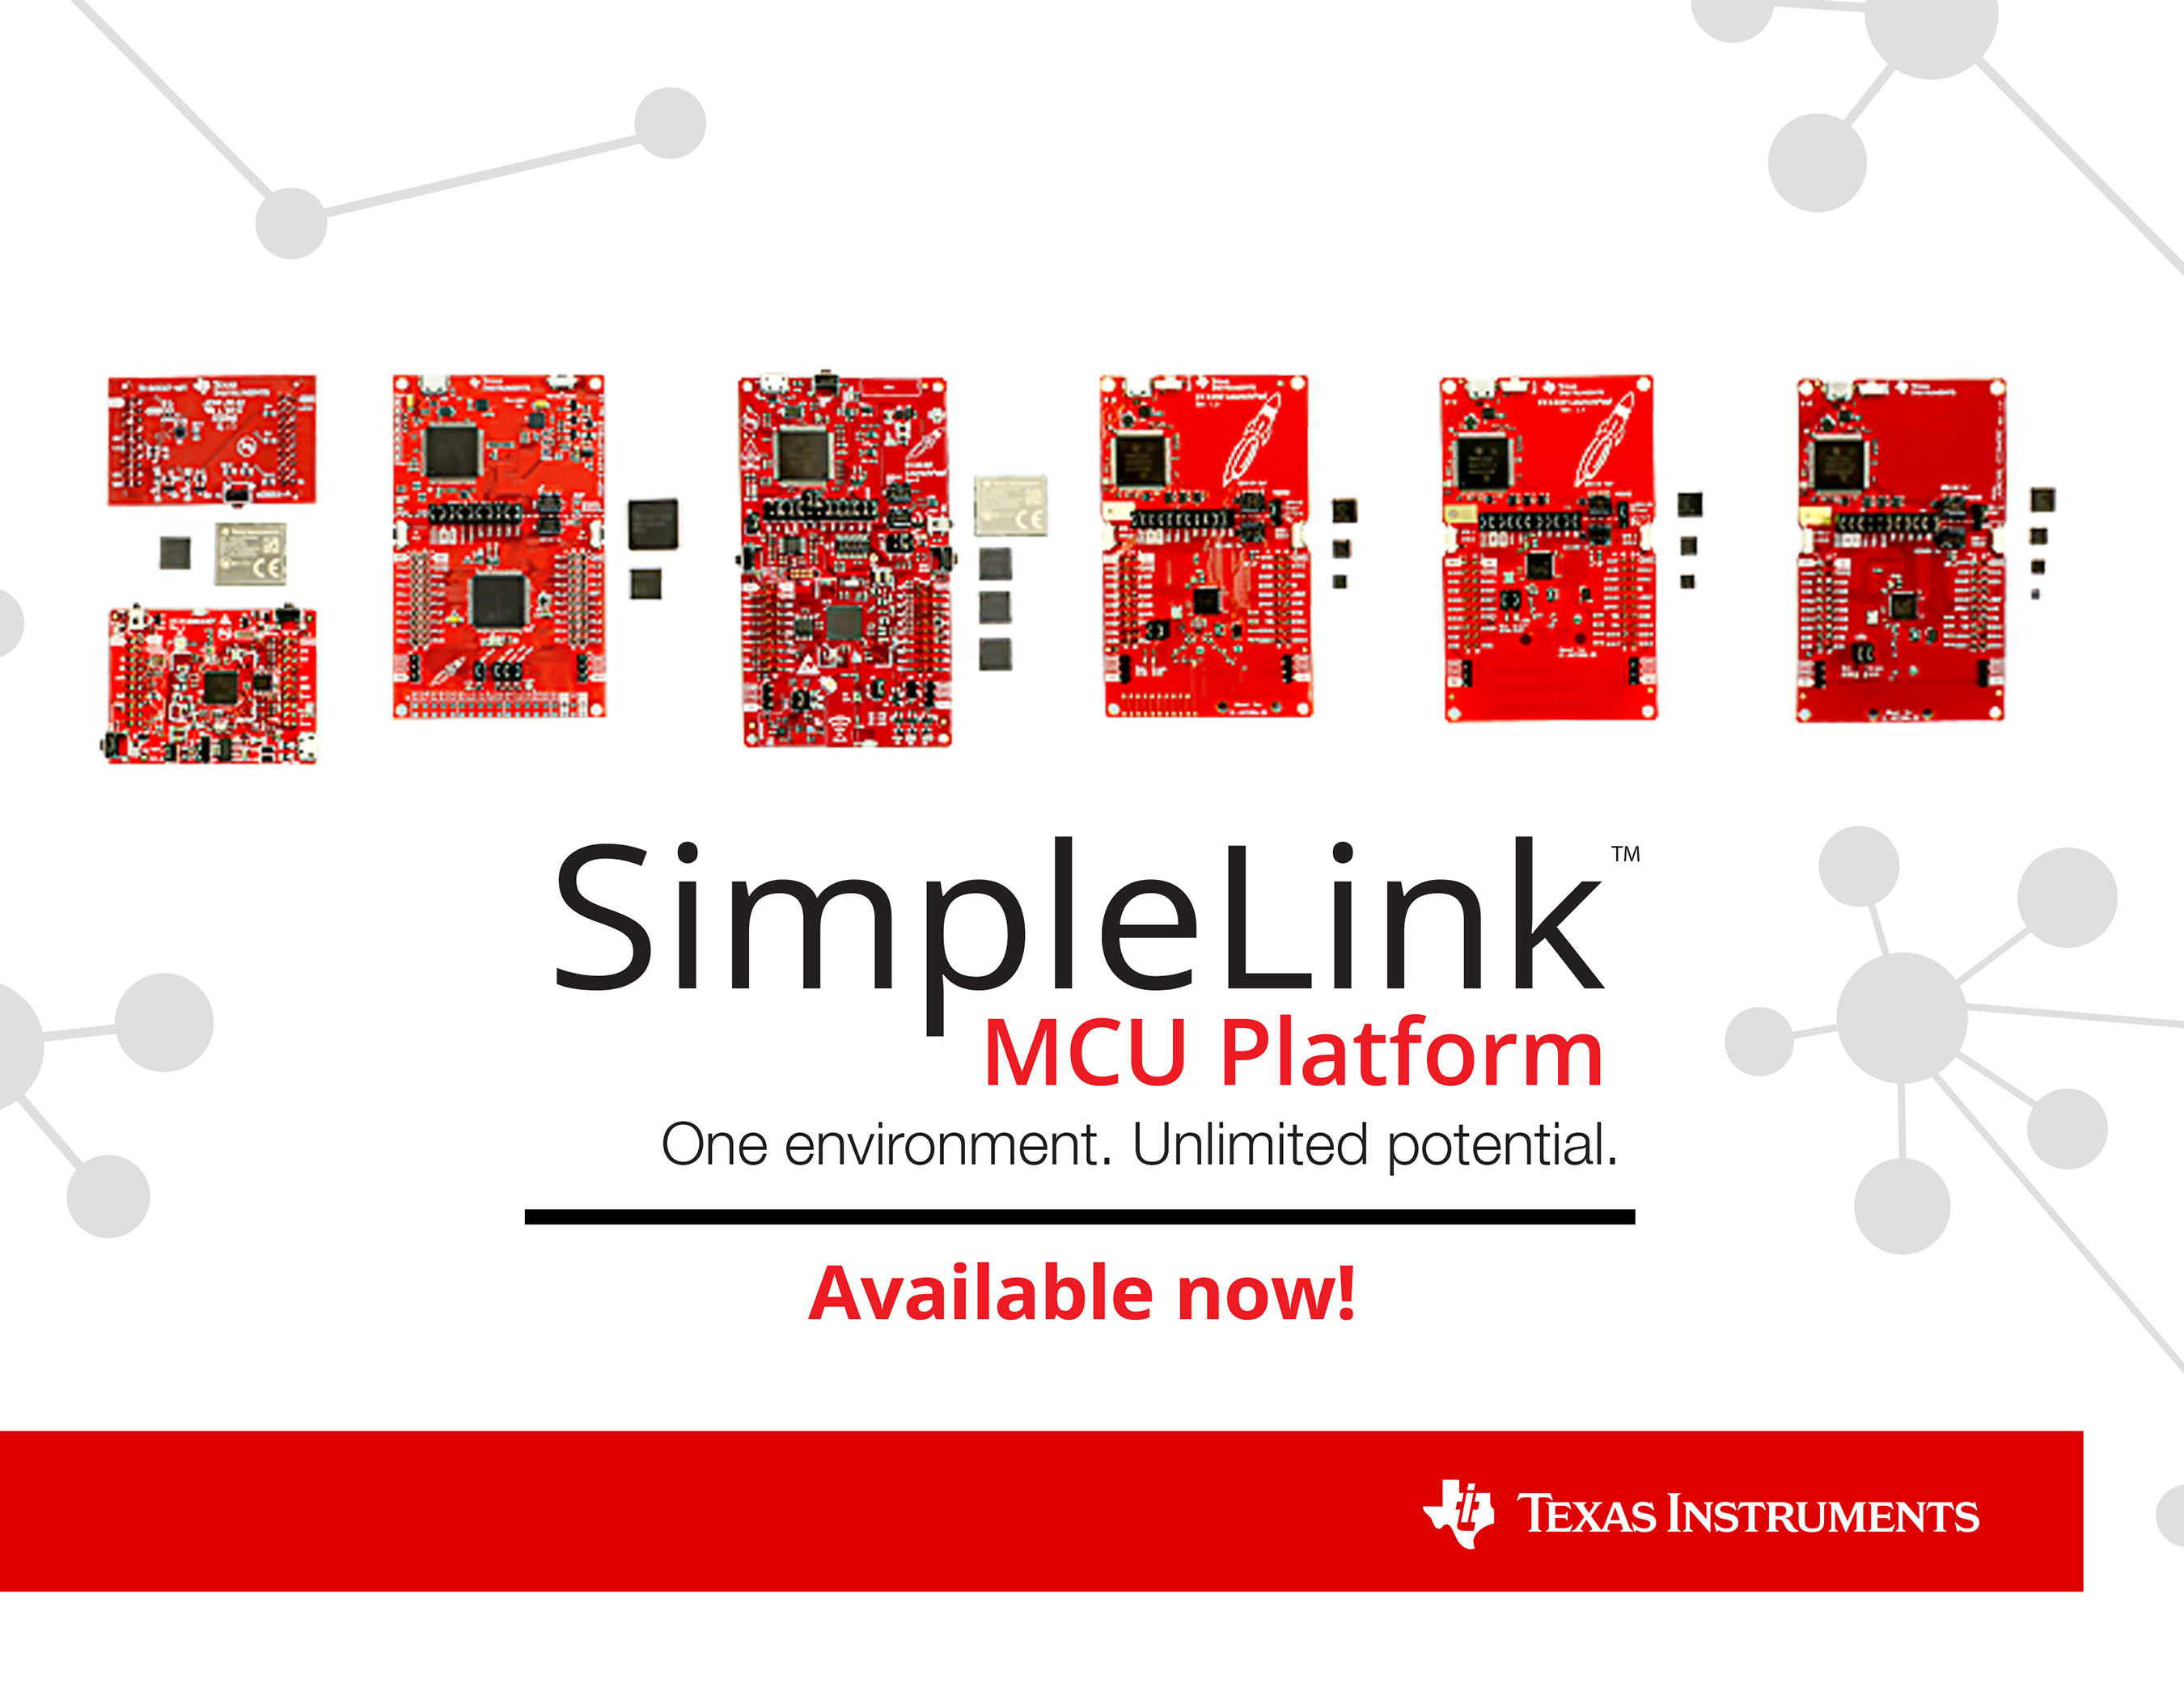 Accelerate product expansion and maximize software investment with the new SimpleLink™ MCU platform